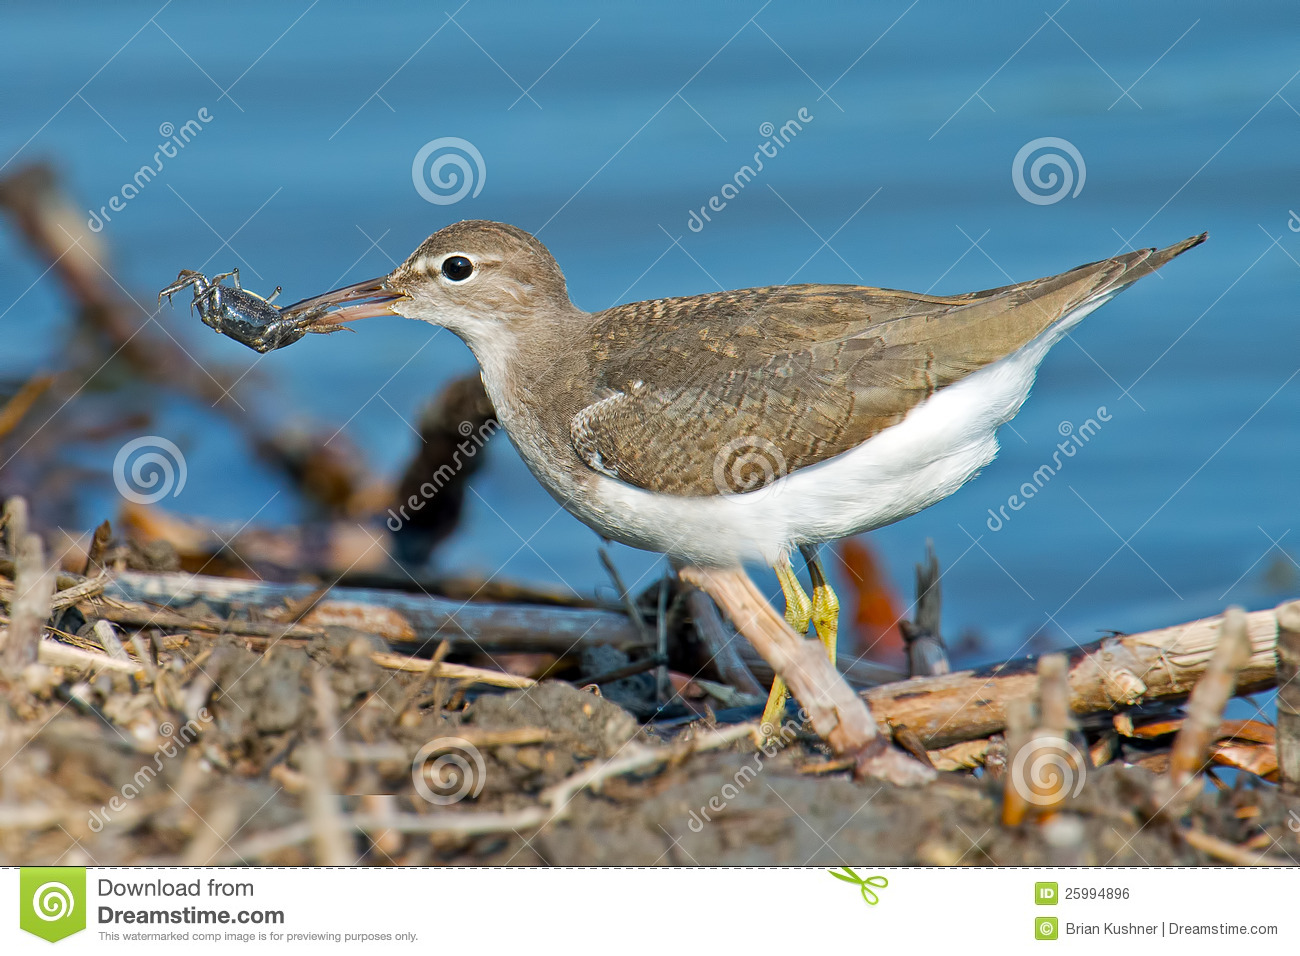 Spotted Sandpiper clipart #3, Download drawings